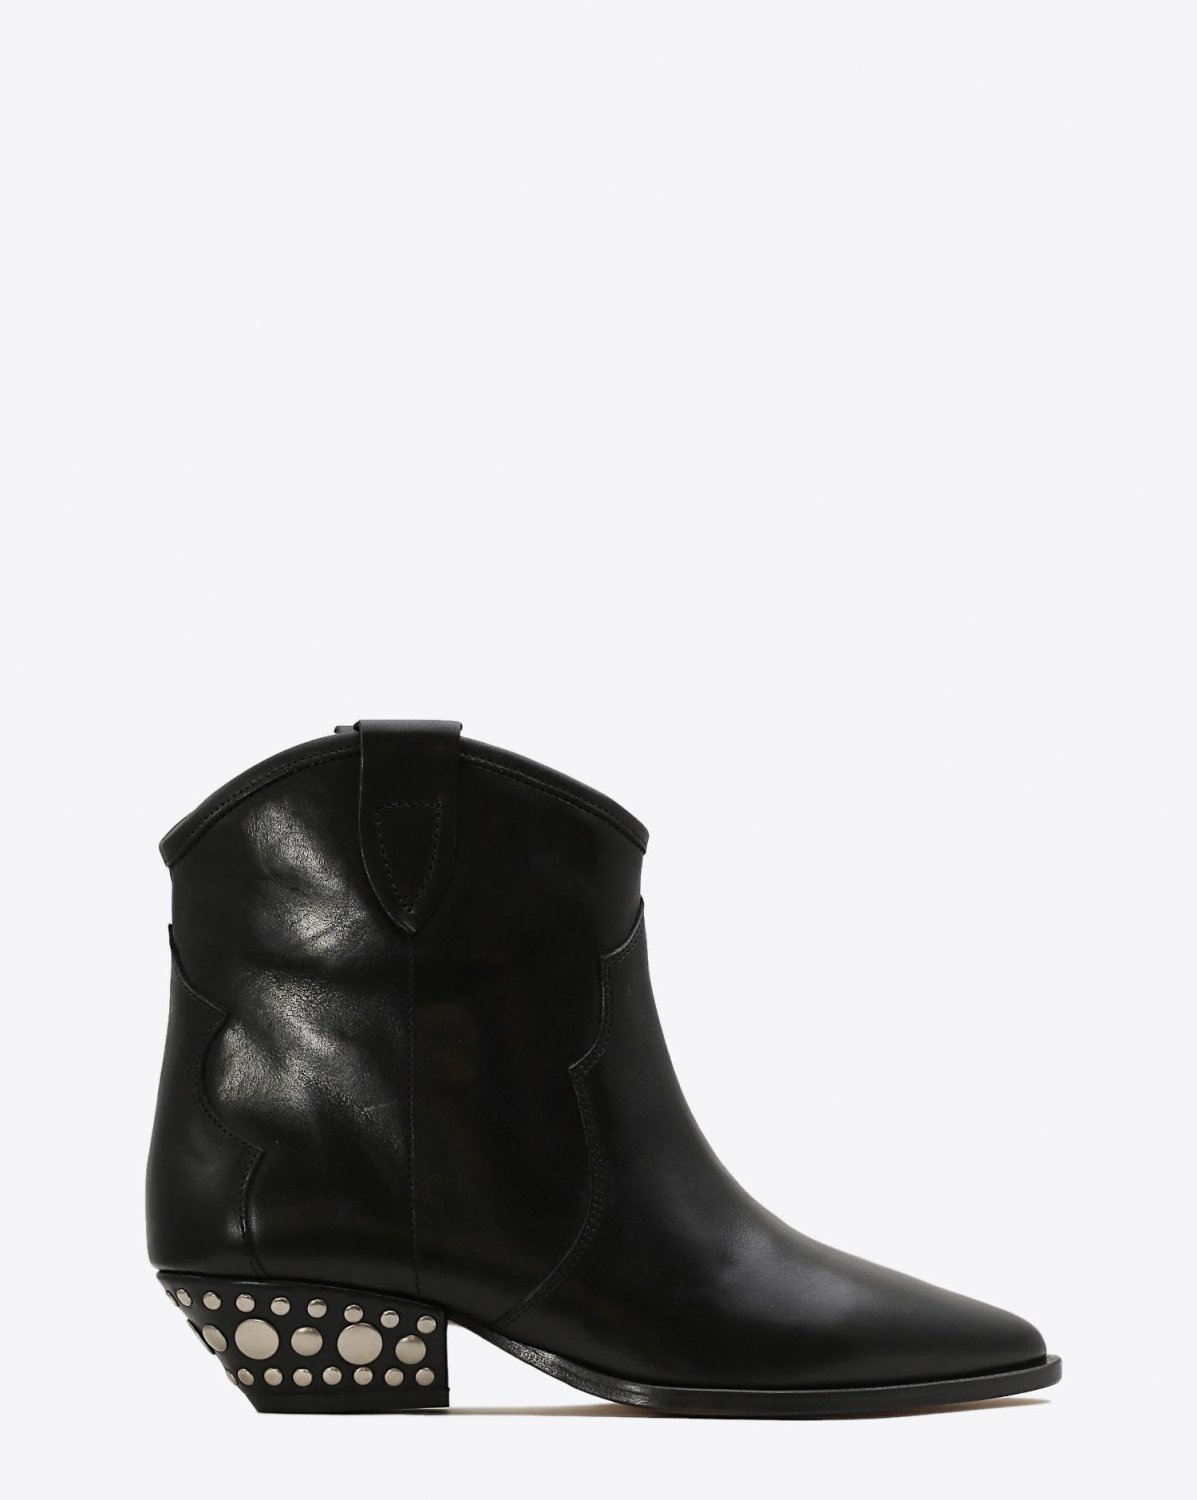 Isabel Marant Chaussures Boots Santiags DAWYNA - Leather Black